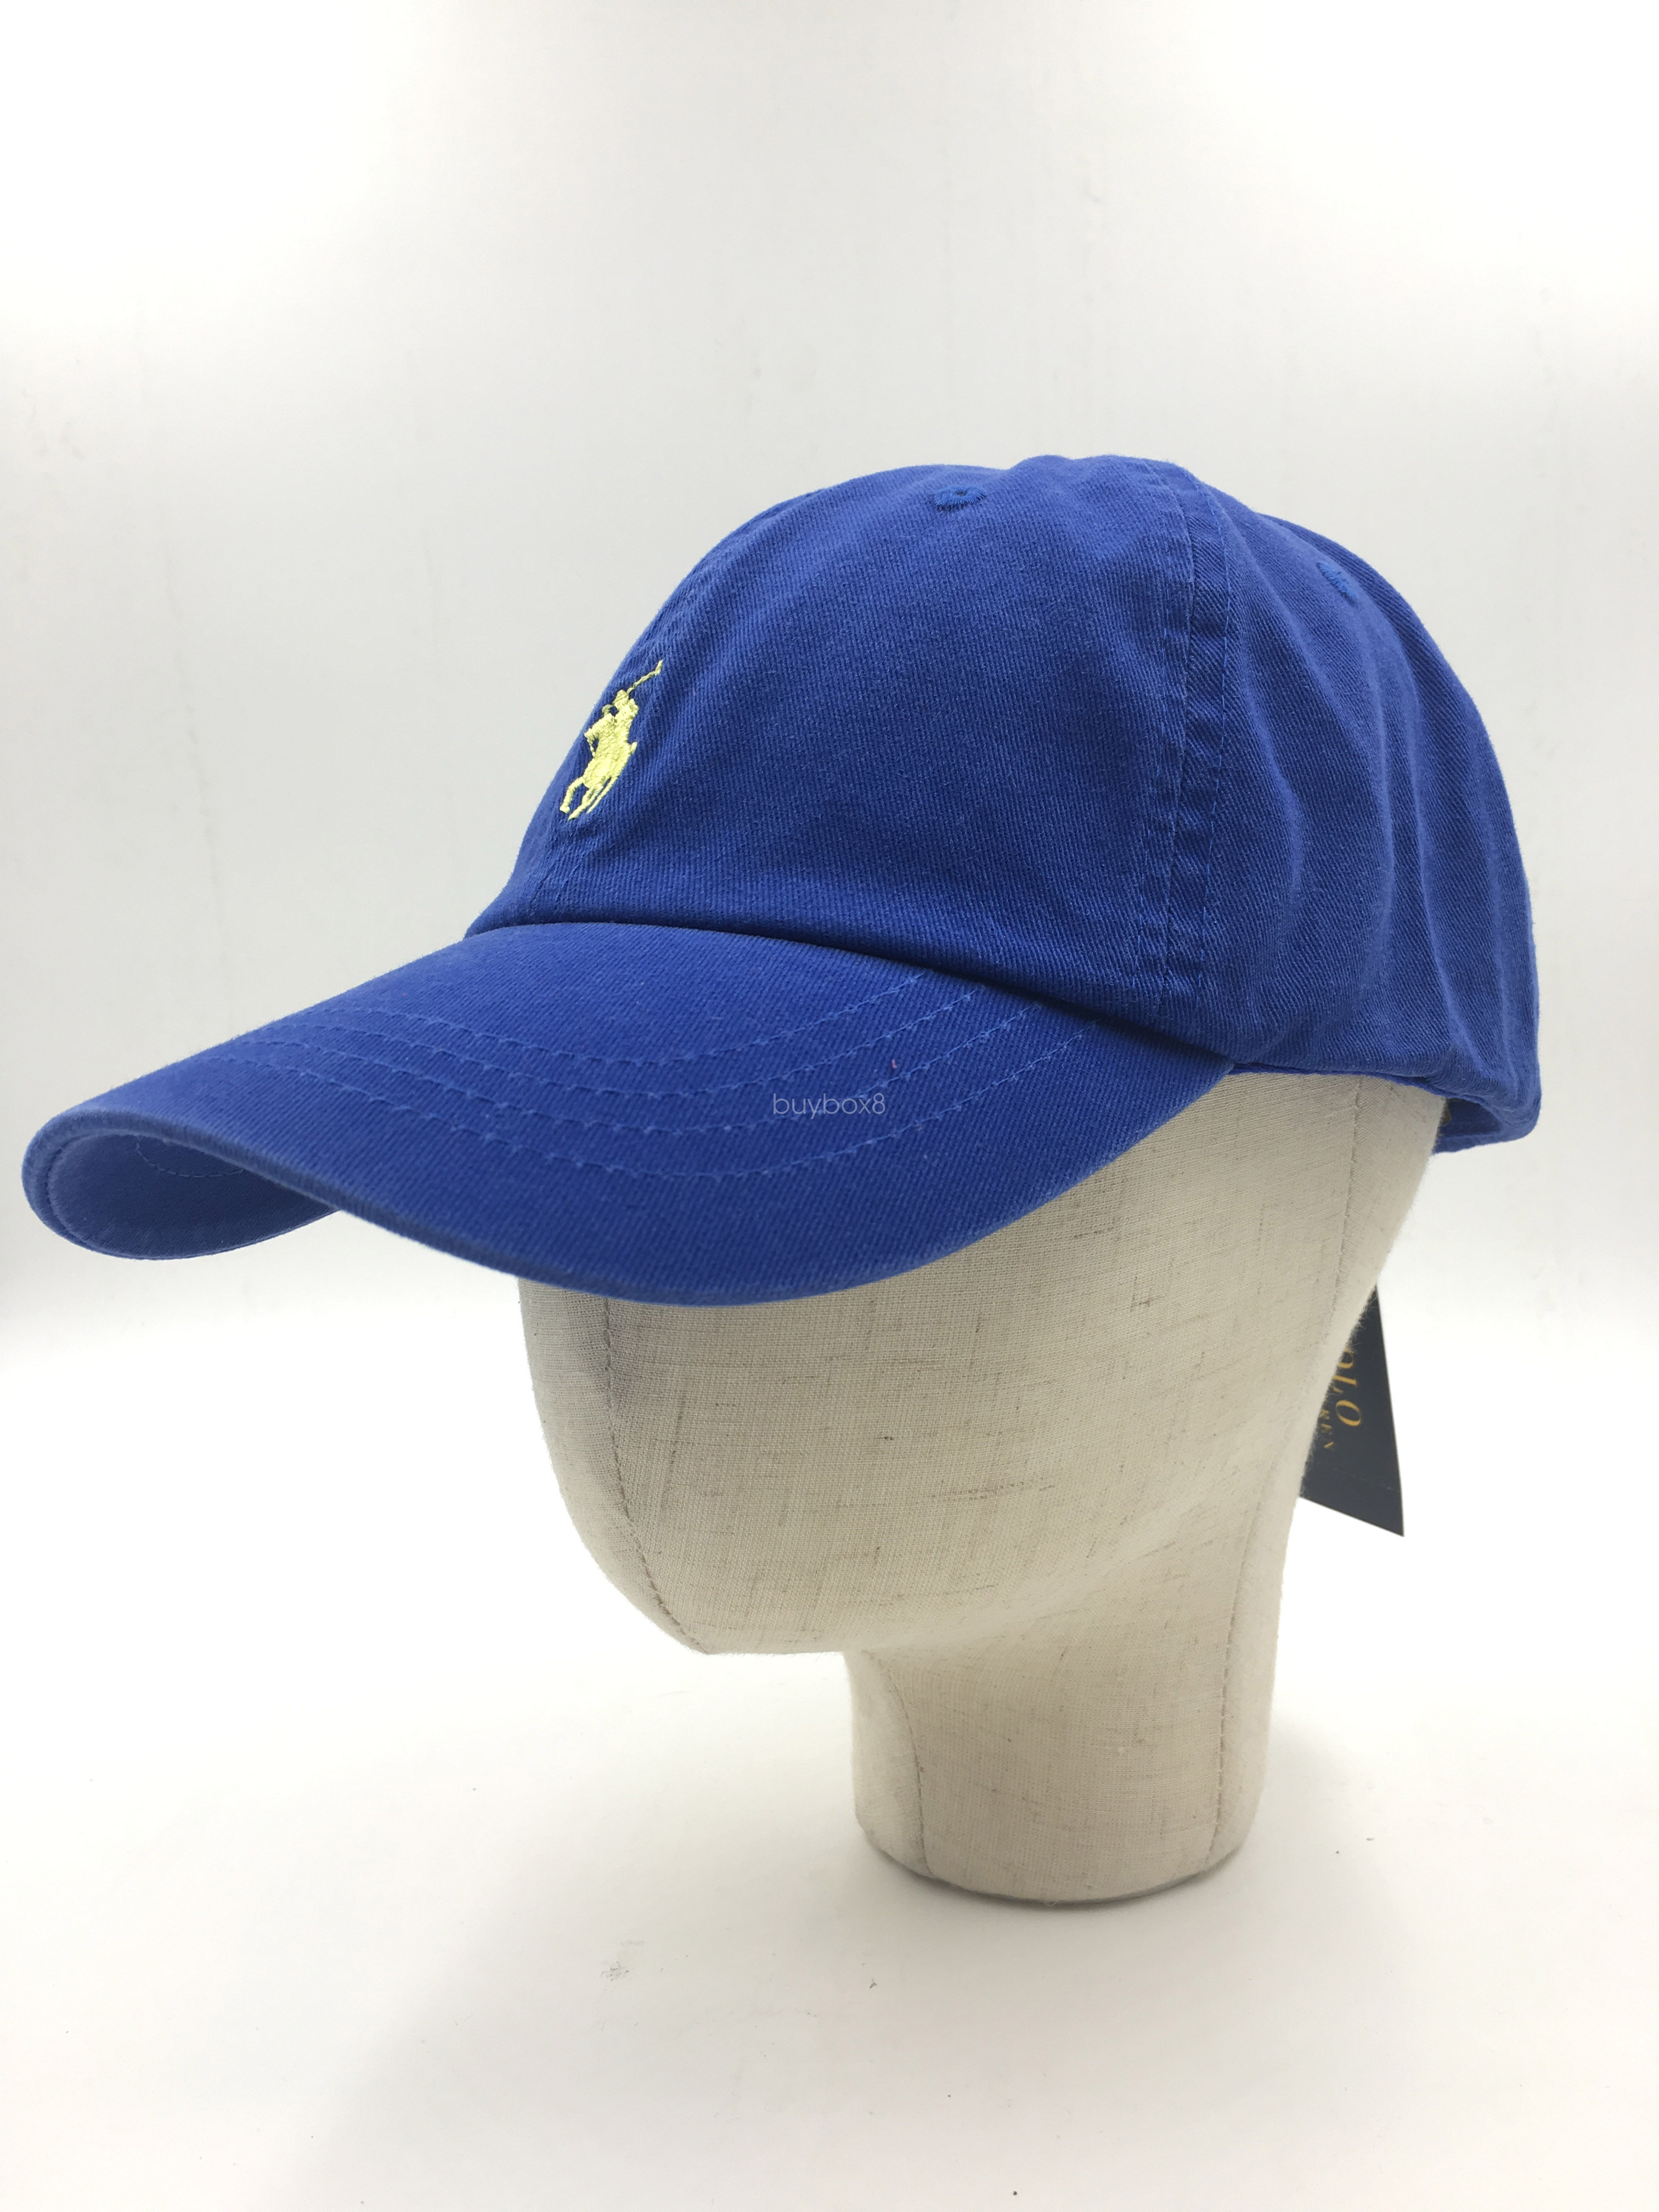 809fb8acb50 Details about Unisex Classic Small Pony RL Polo Cotton Chino Sport Golf Baseball  Cap Hat Blue